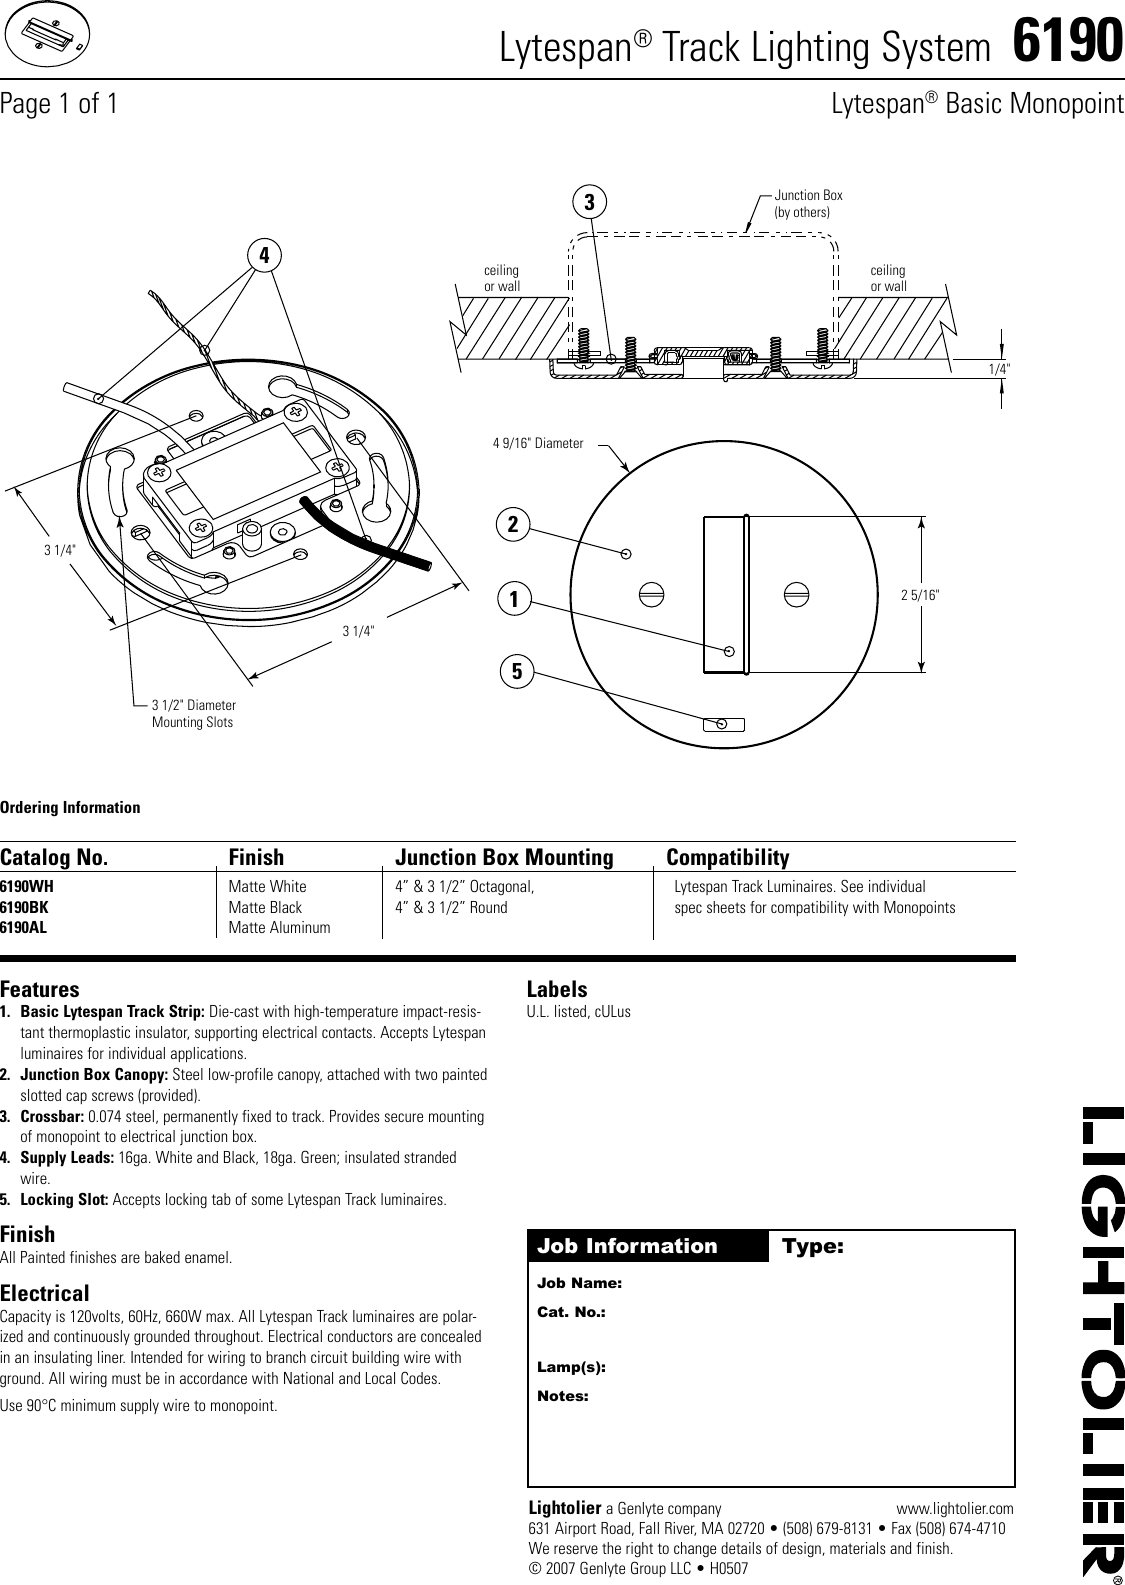 Putting Lighting In Structure Manual Guide